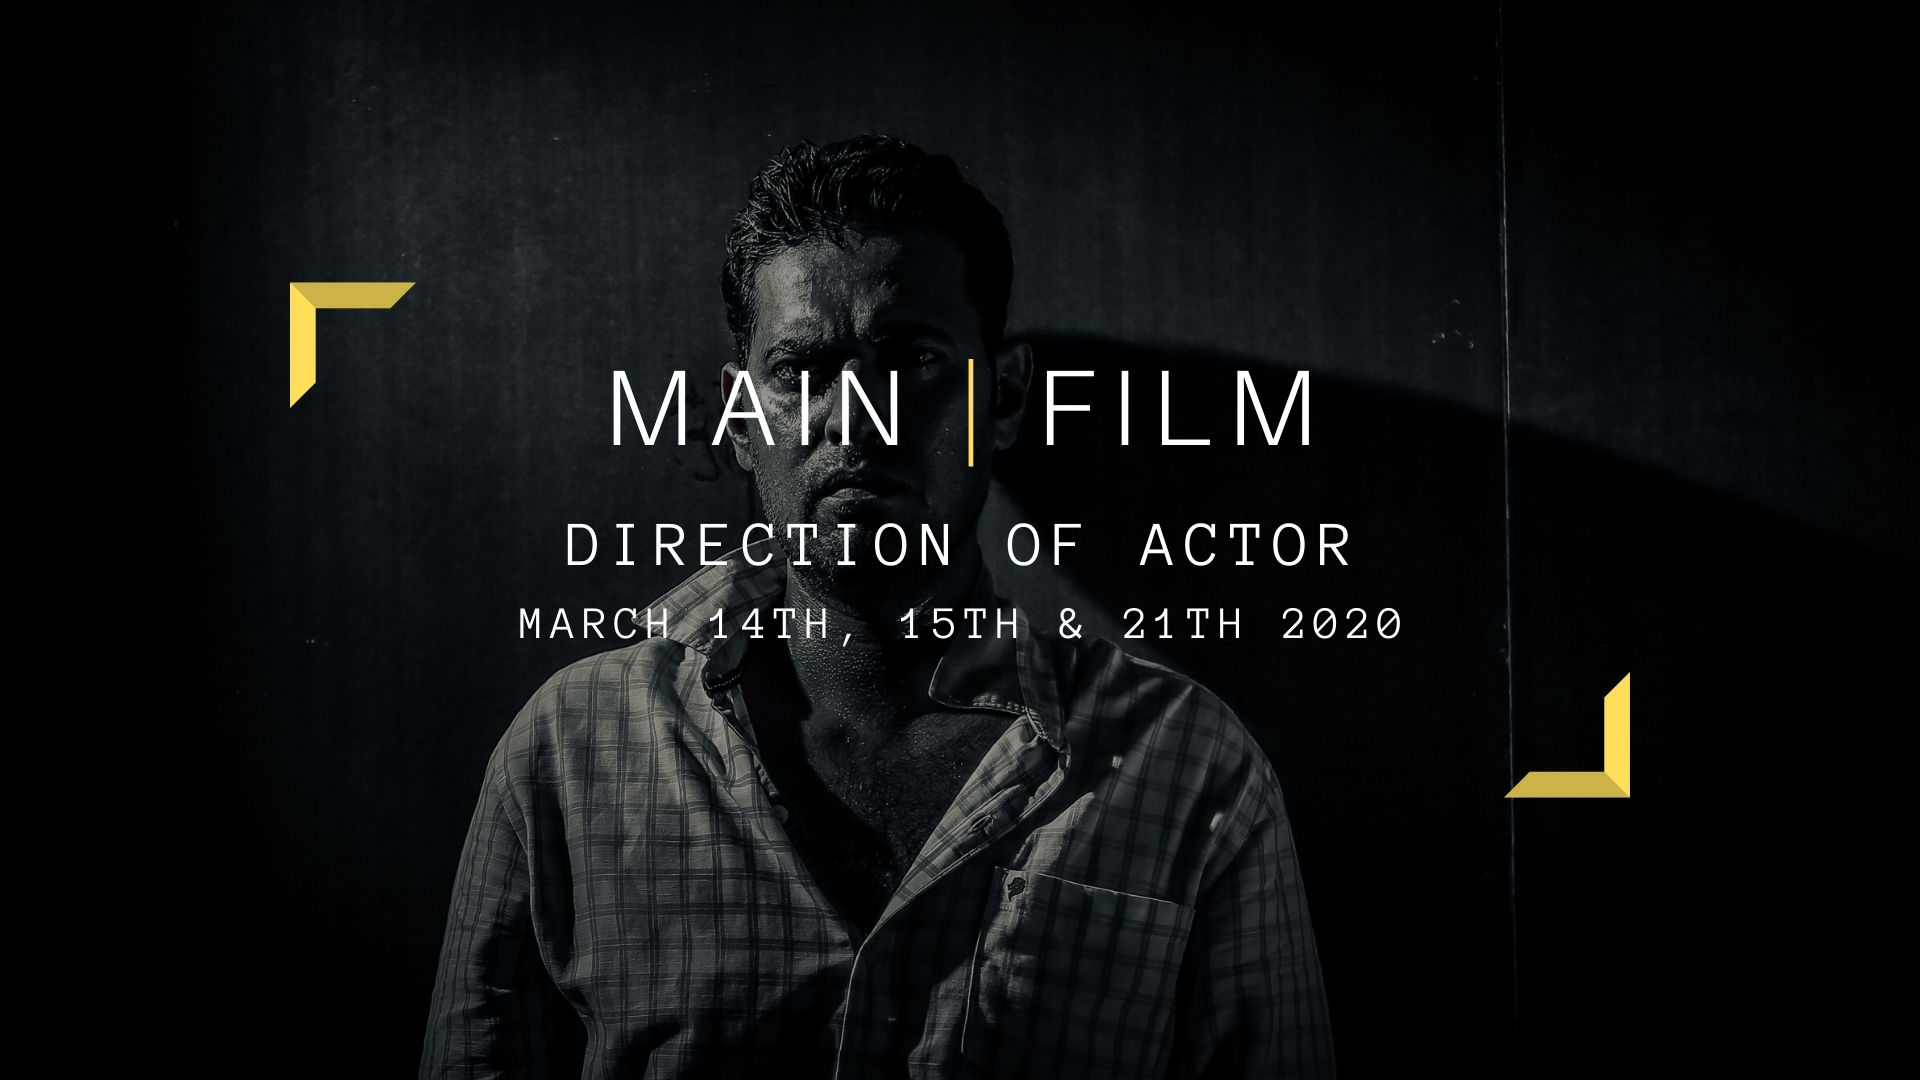 Direction of actor